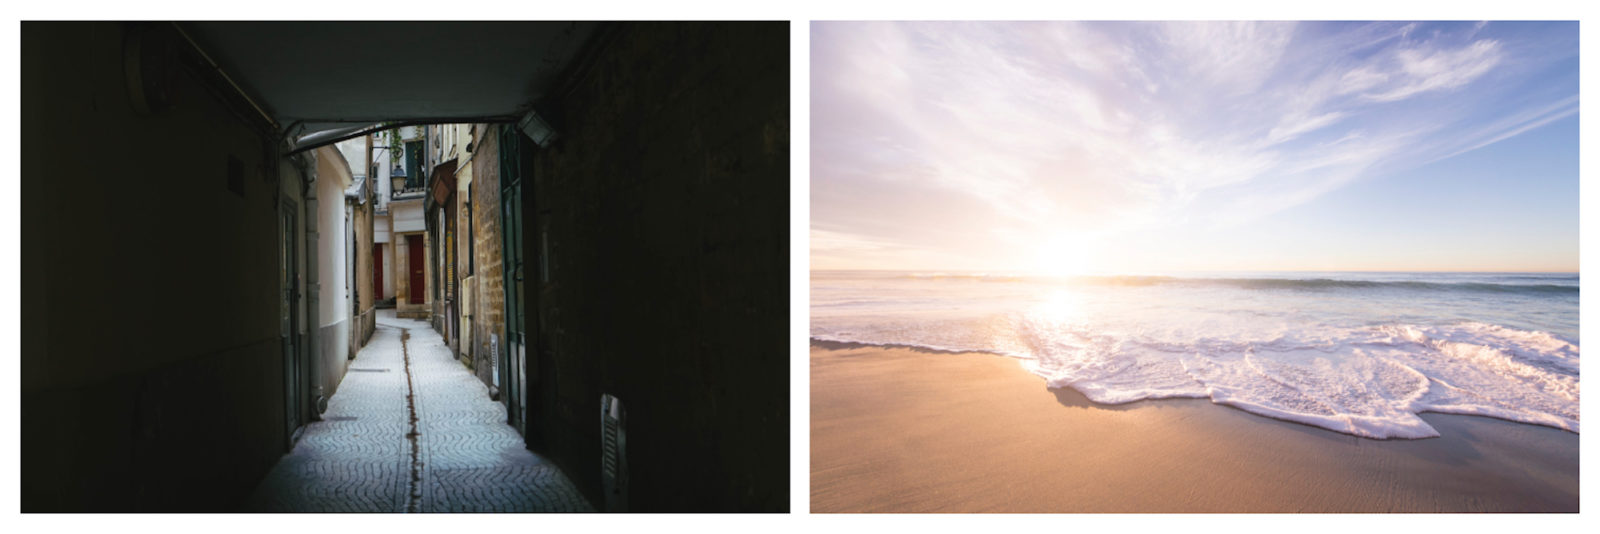 Exploring Paris' narrow winding passageways (left). A dreamy deserted beach and big blue skies at sunrise (right).